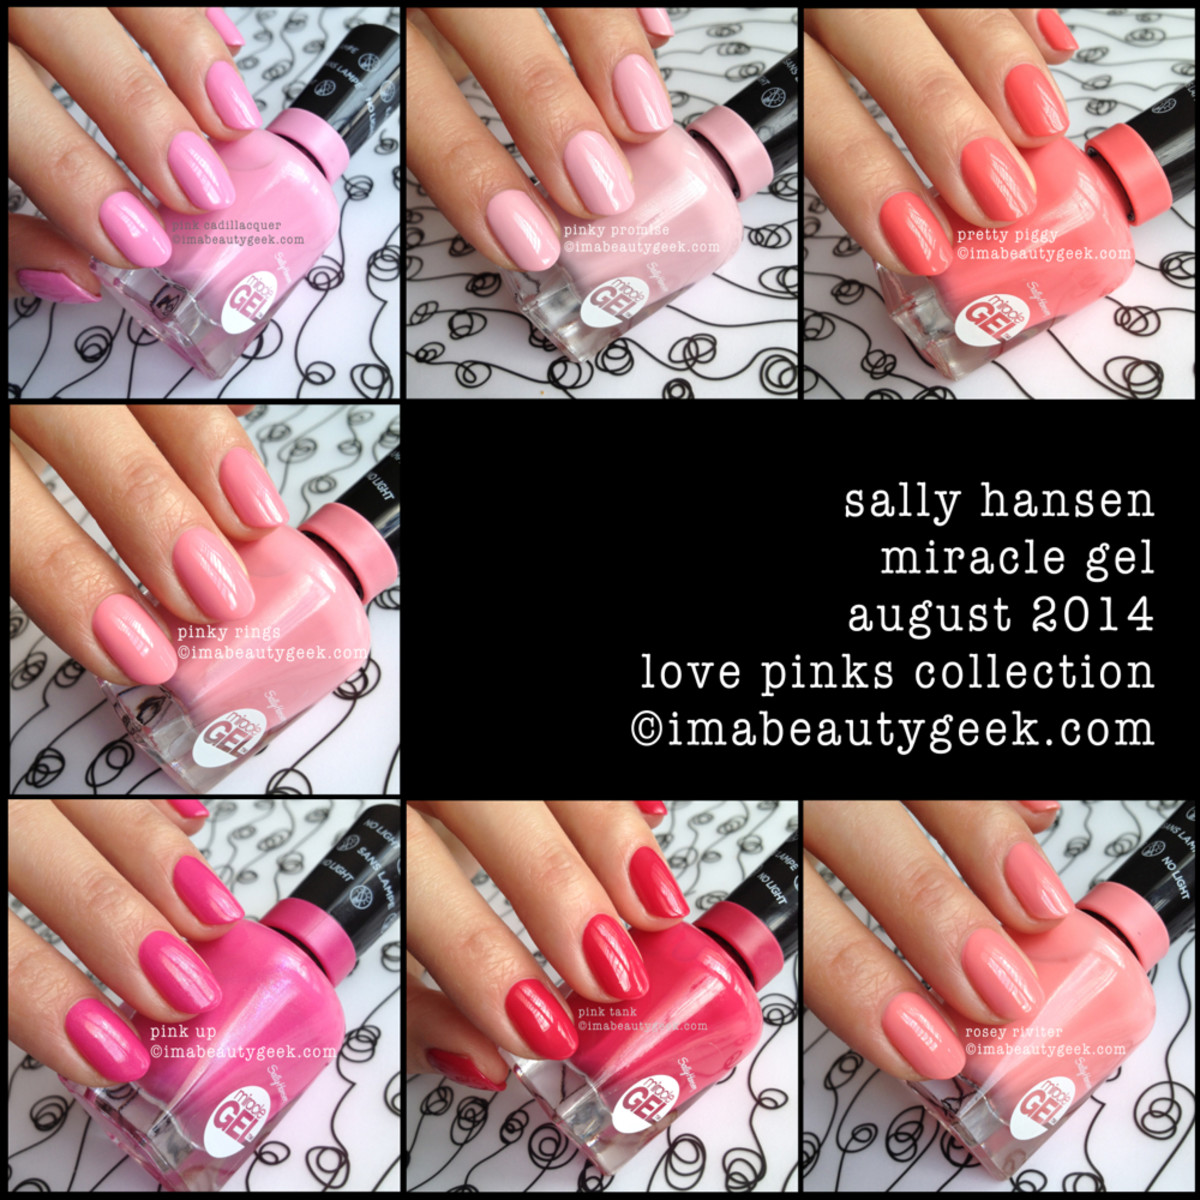 Sally Hansen Miracle Gel Love Pinks Collection Swatches